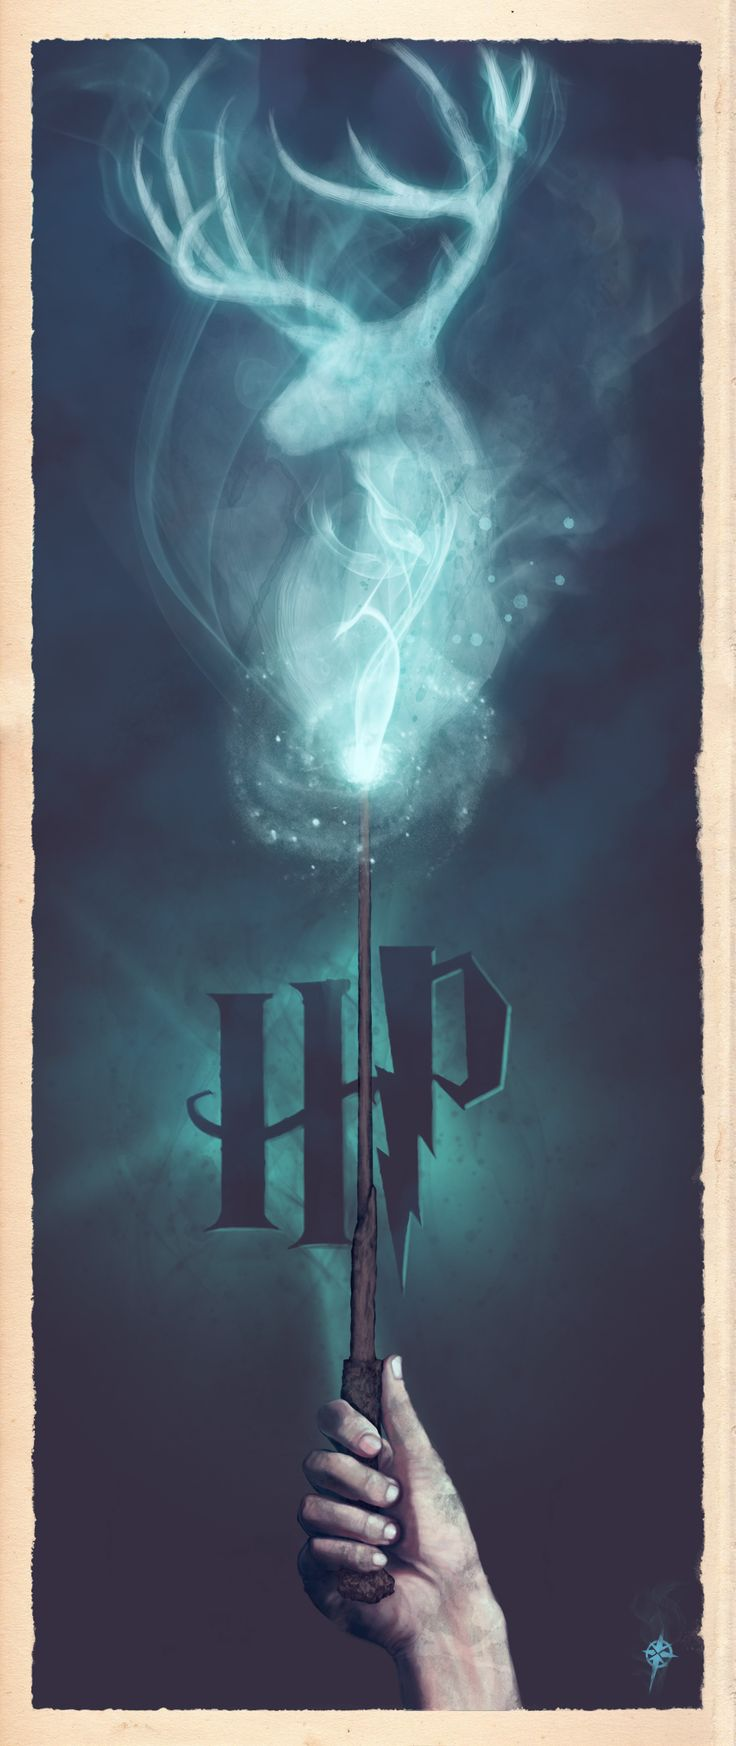 337 best images about harry and ginny on pinterest harry birthday - 337 Best Images About Harry And Ginny On Pinterest Harry Birthday Harry S Stag Patronus Download